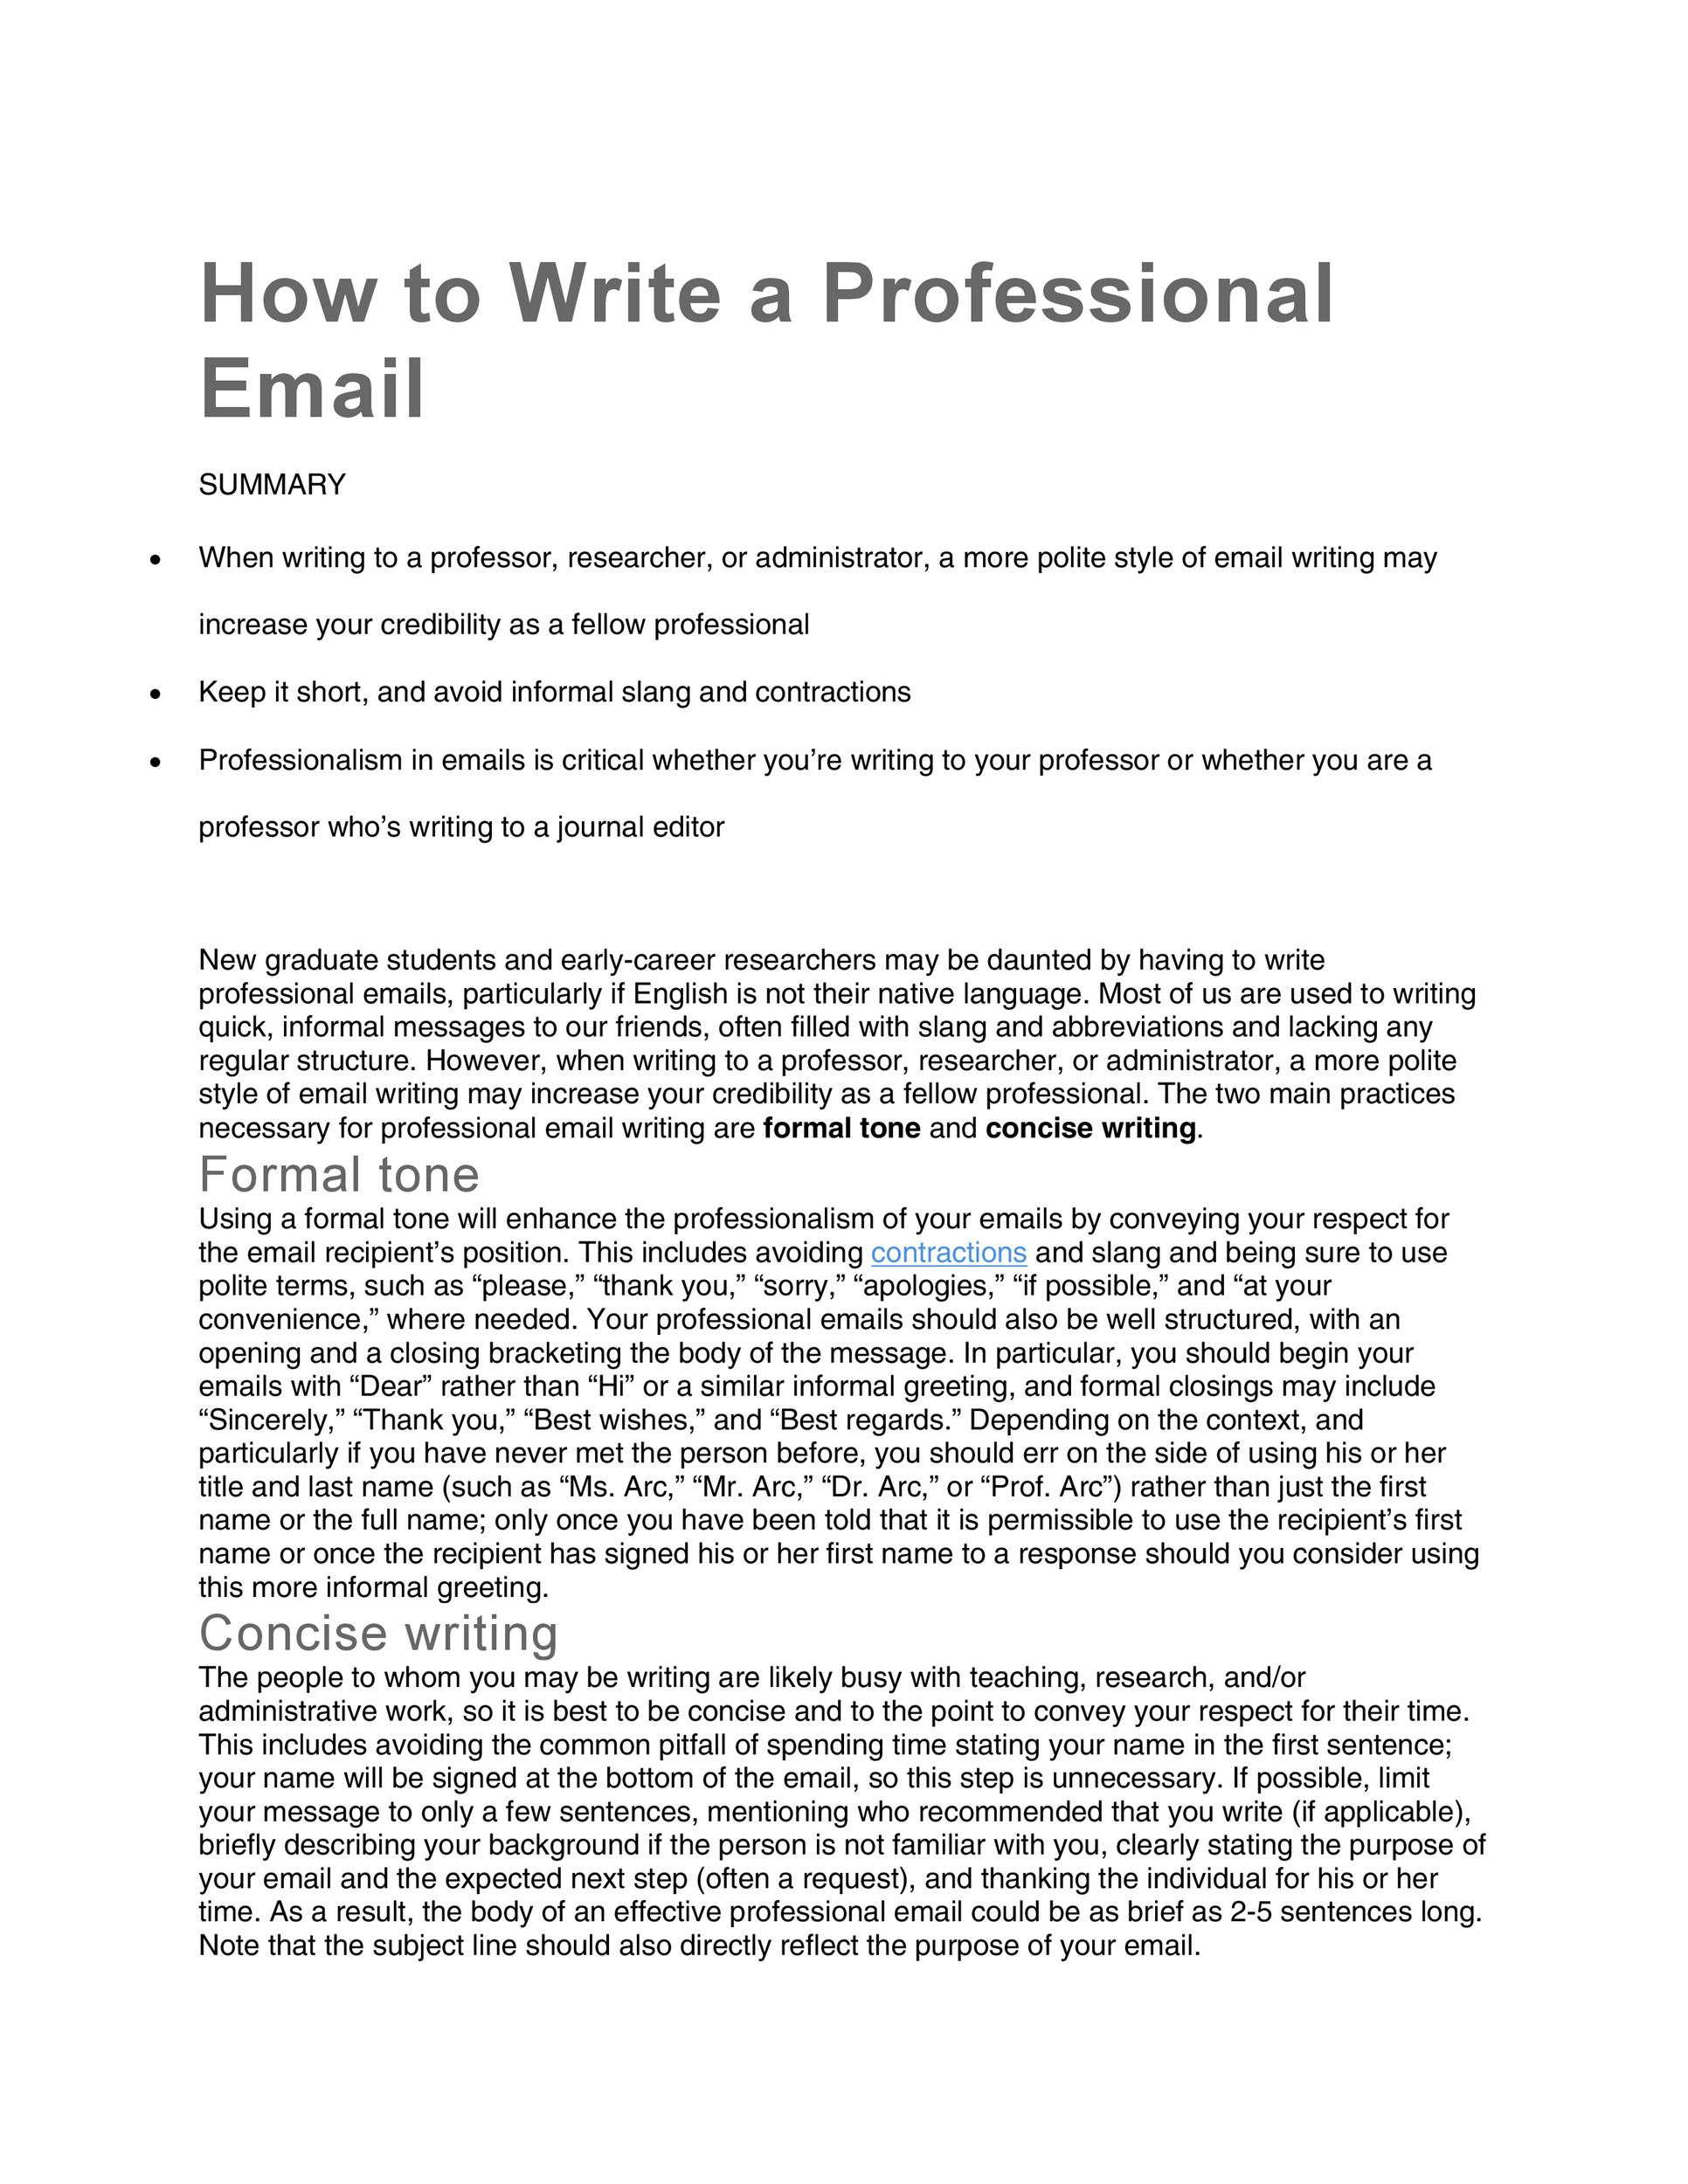 how to write a professional email asking for something